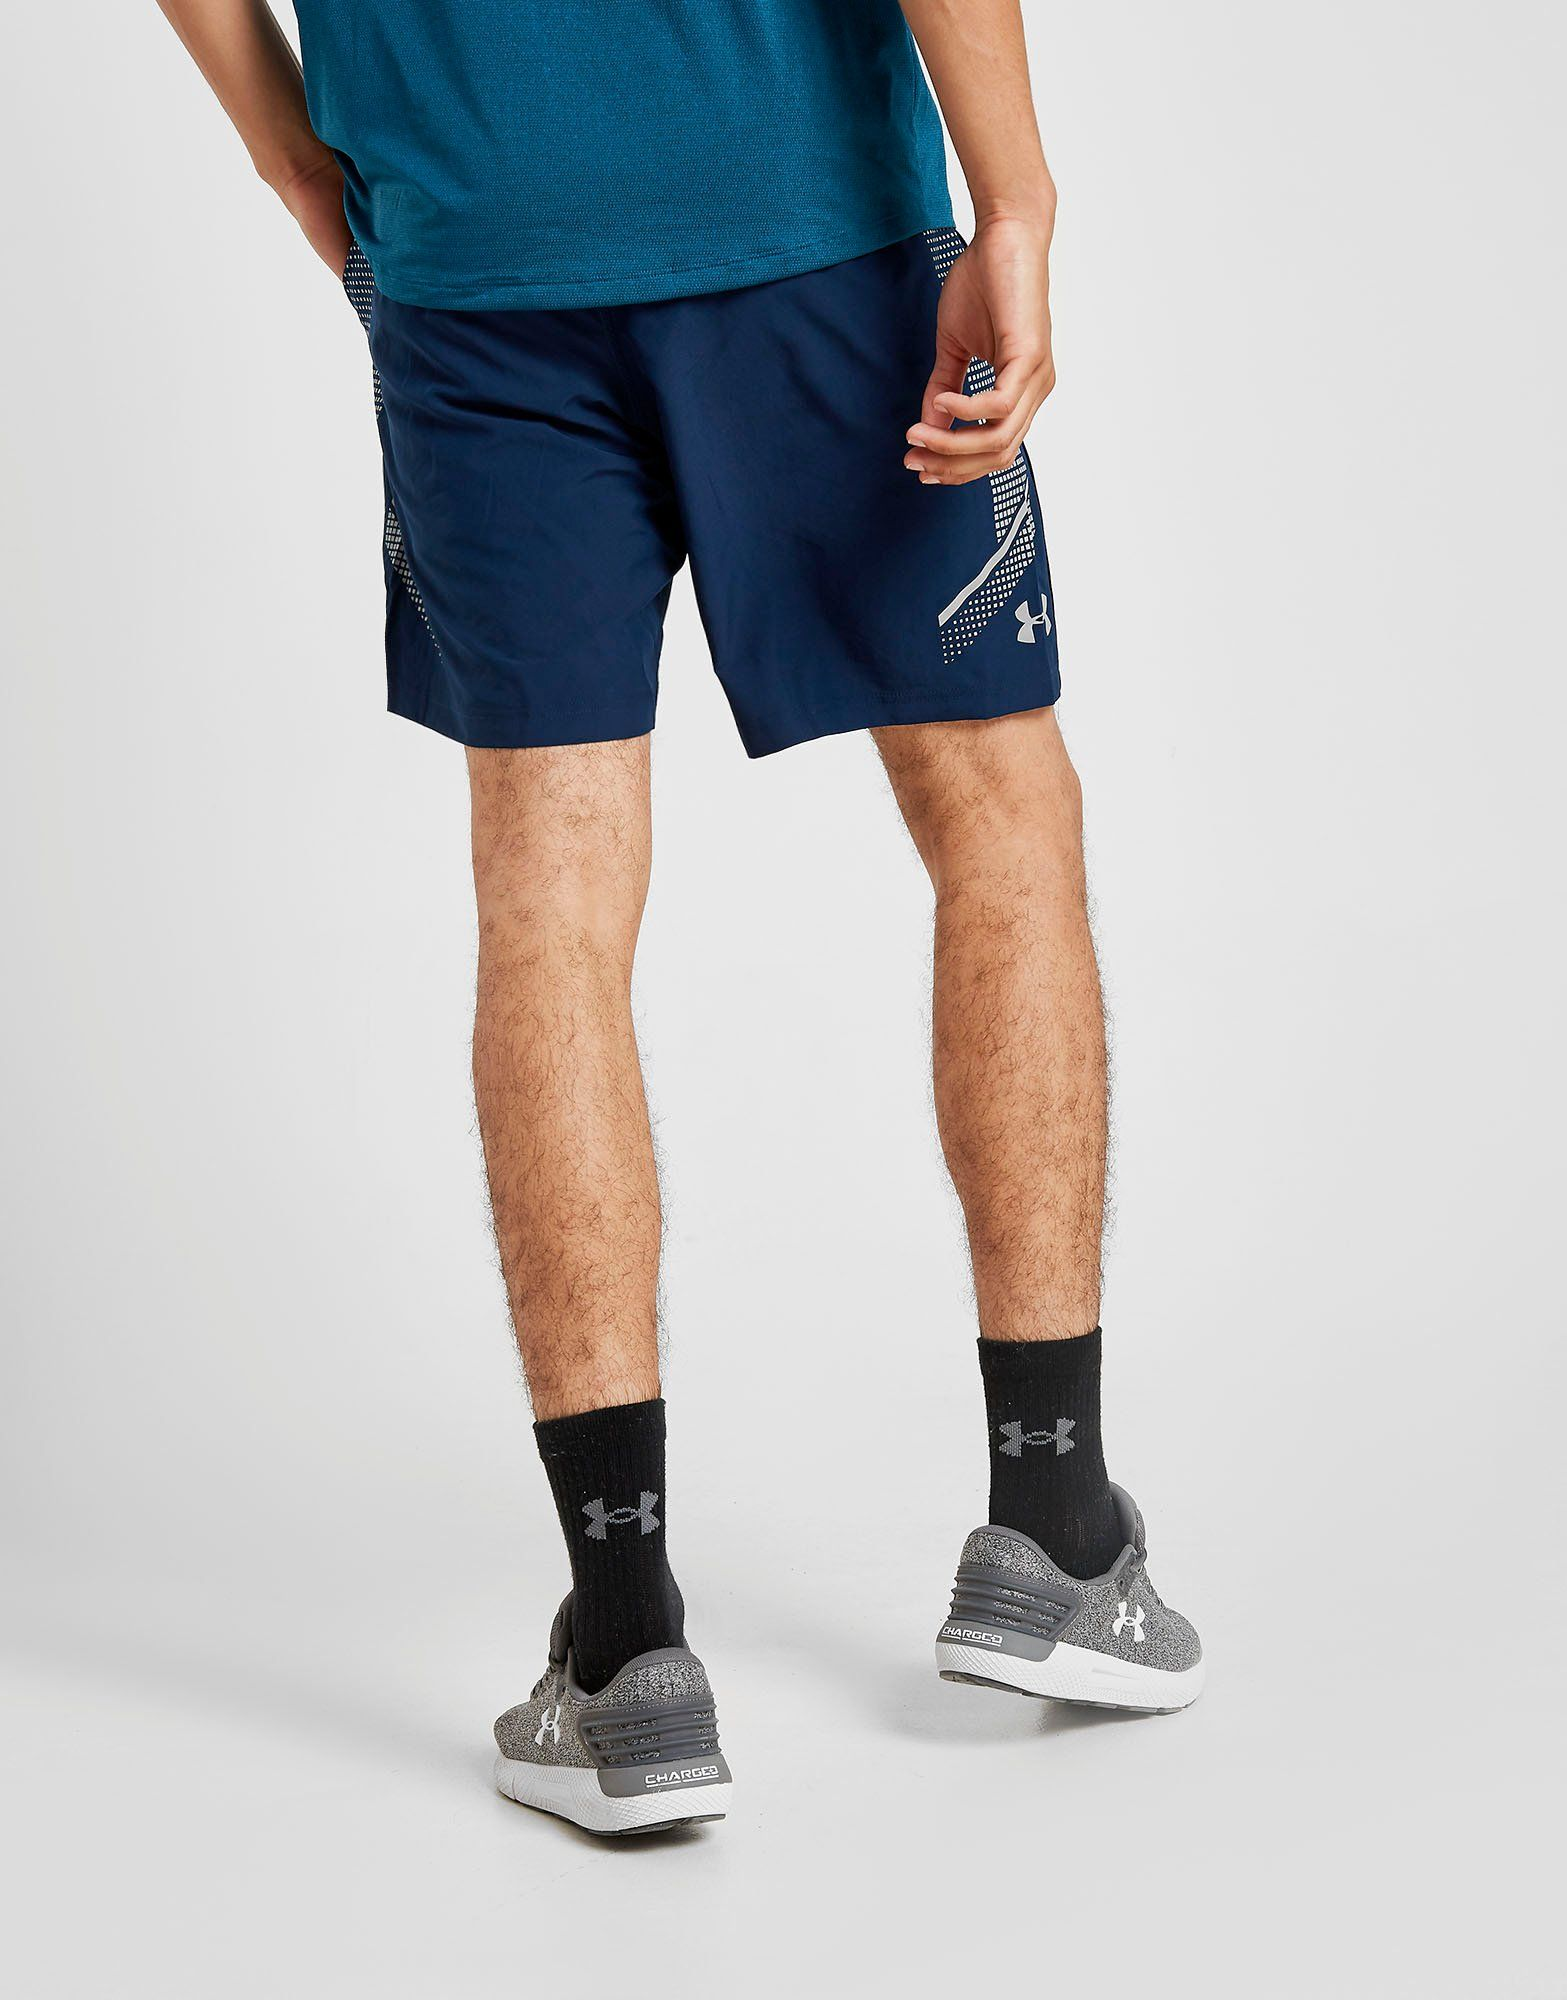 Under Armour Graphic Woven Shorts